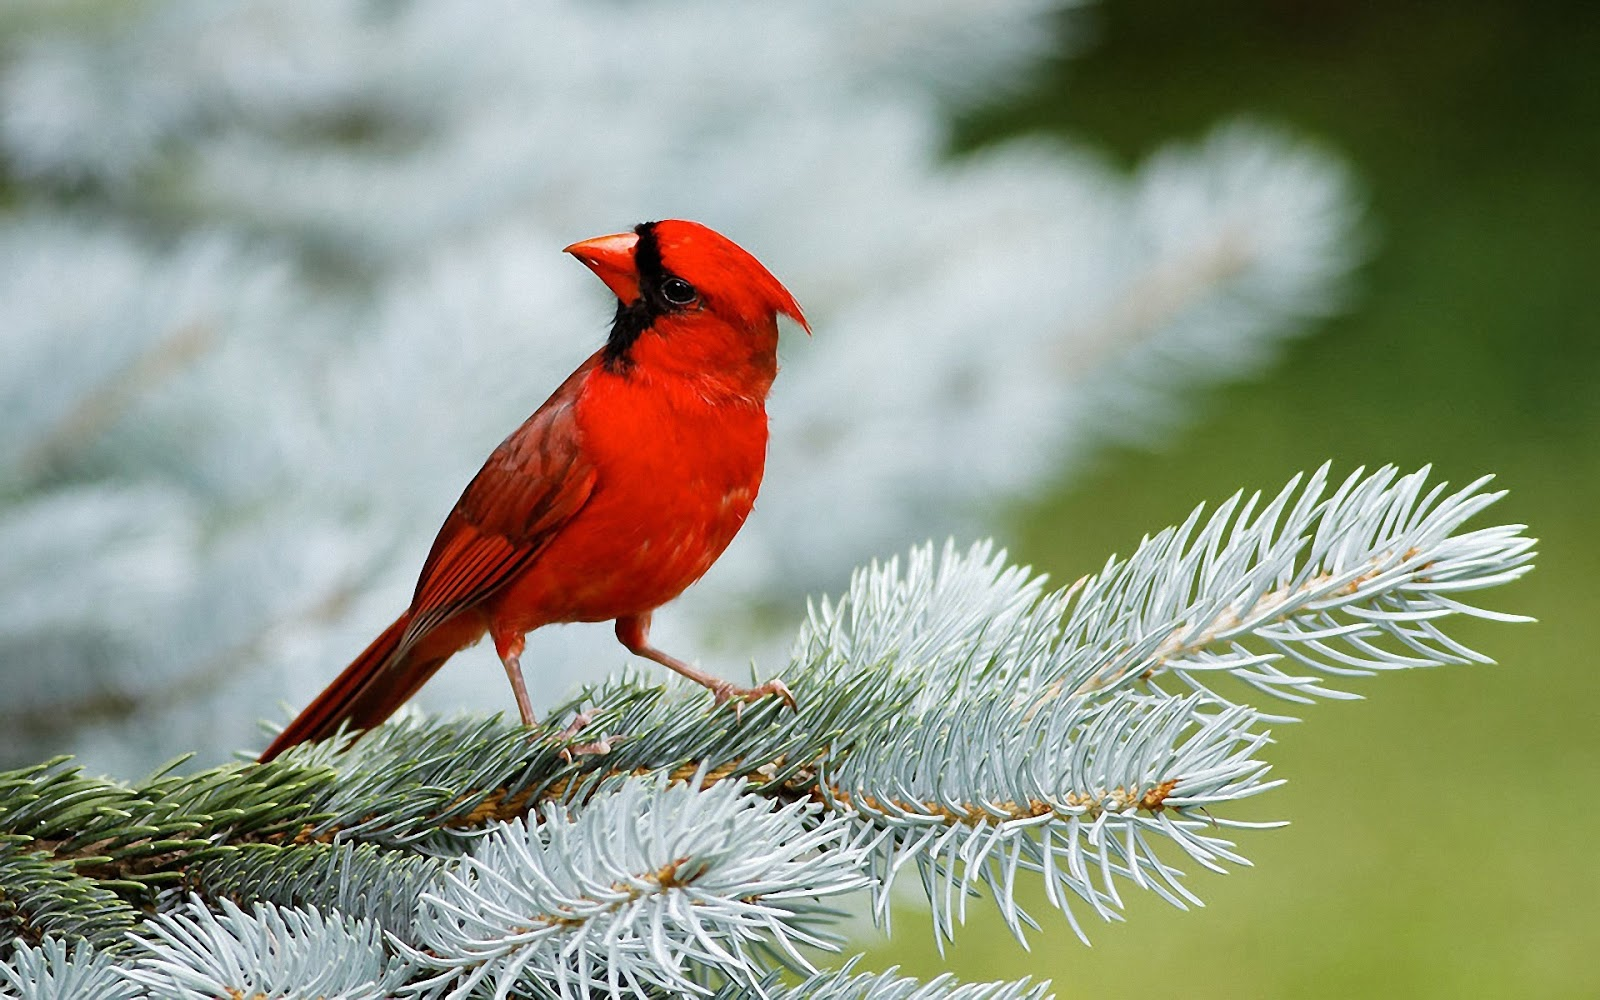 Wallpapers: Beautiful Birds Photos Images Pictures 50 HD